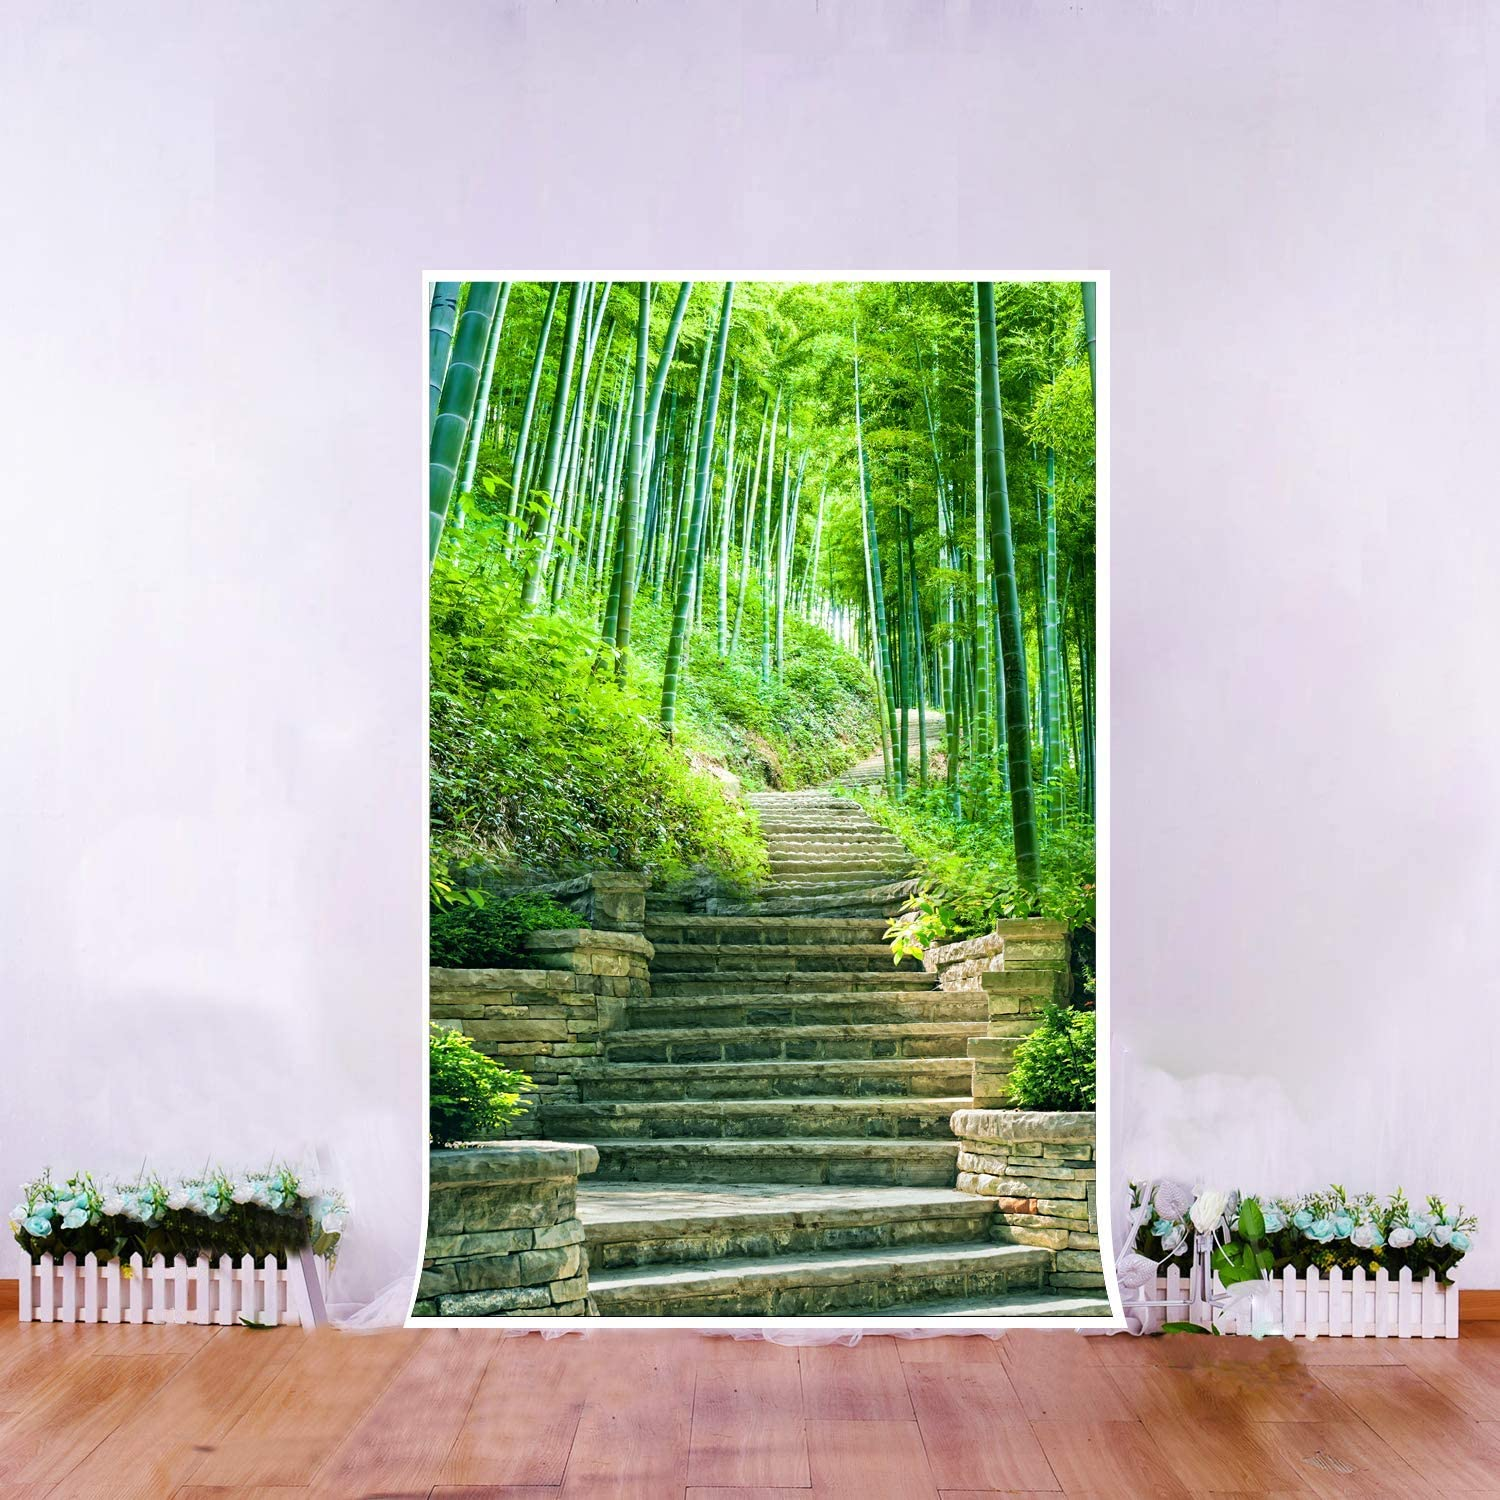 8x10ft Background Green Bamboo Forest Photography Backdrop Outdoor Scene Photo Props LLFU136